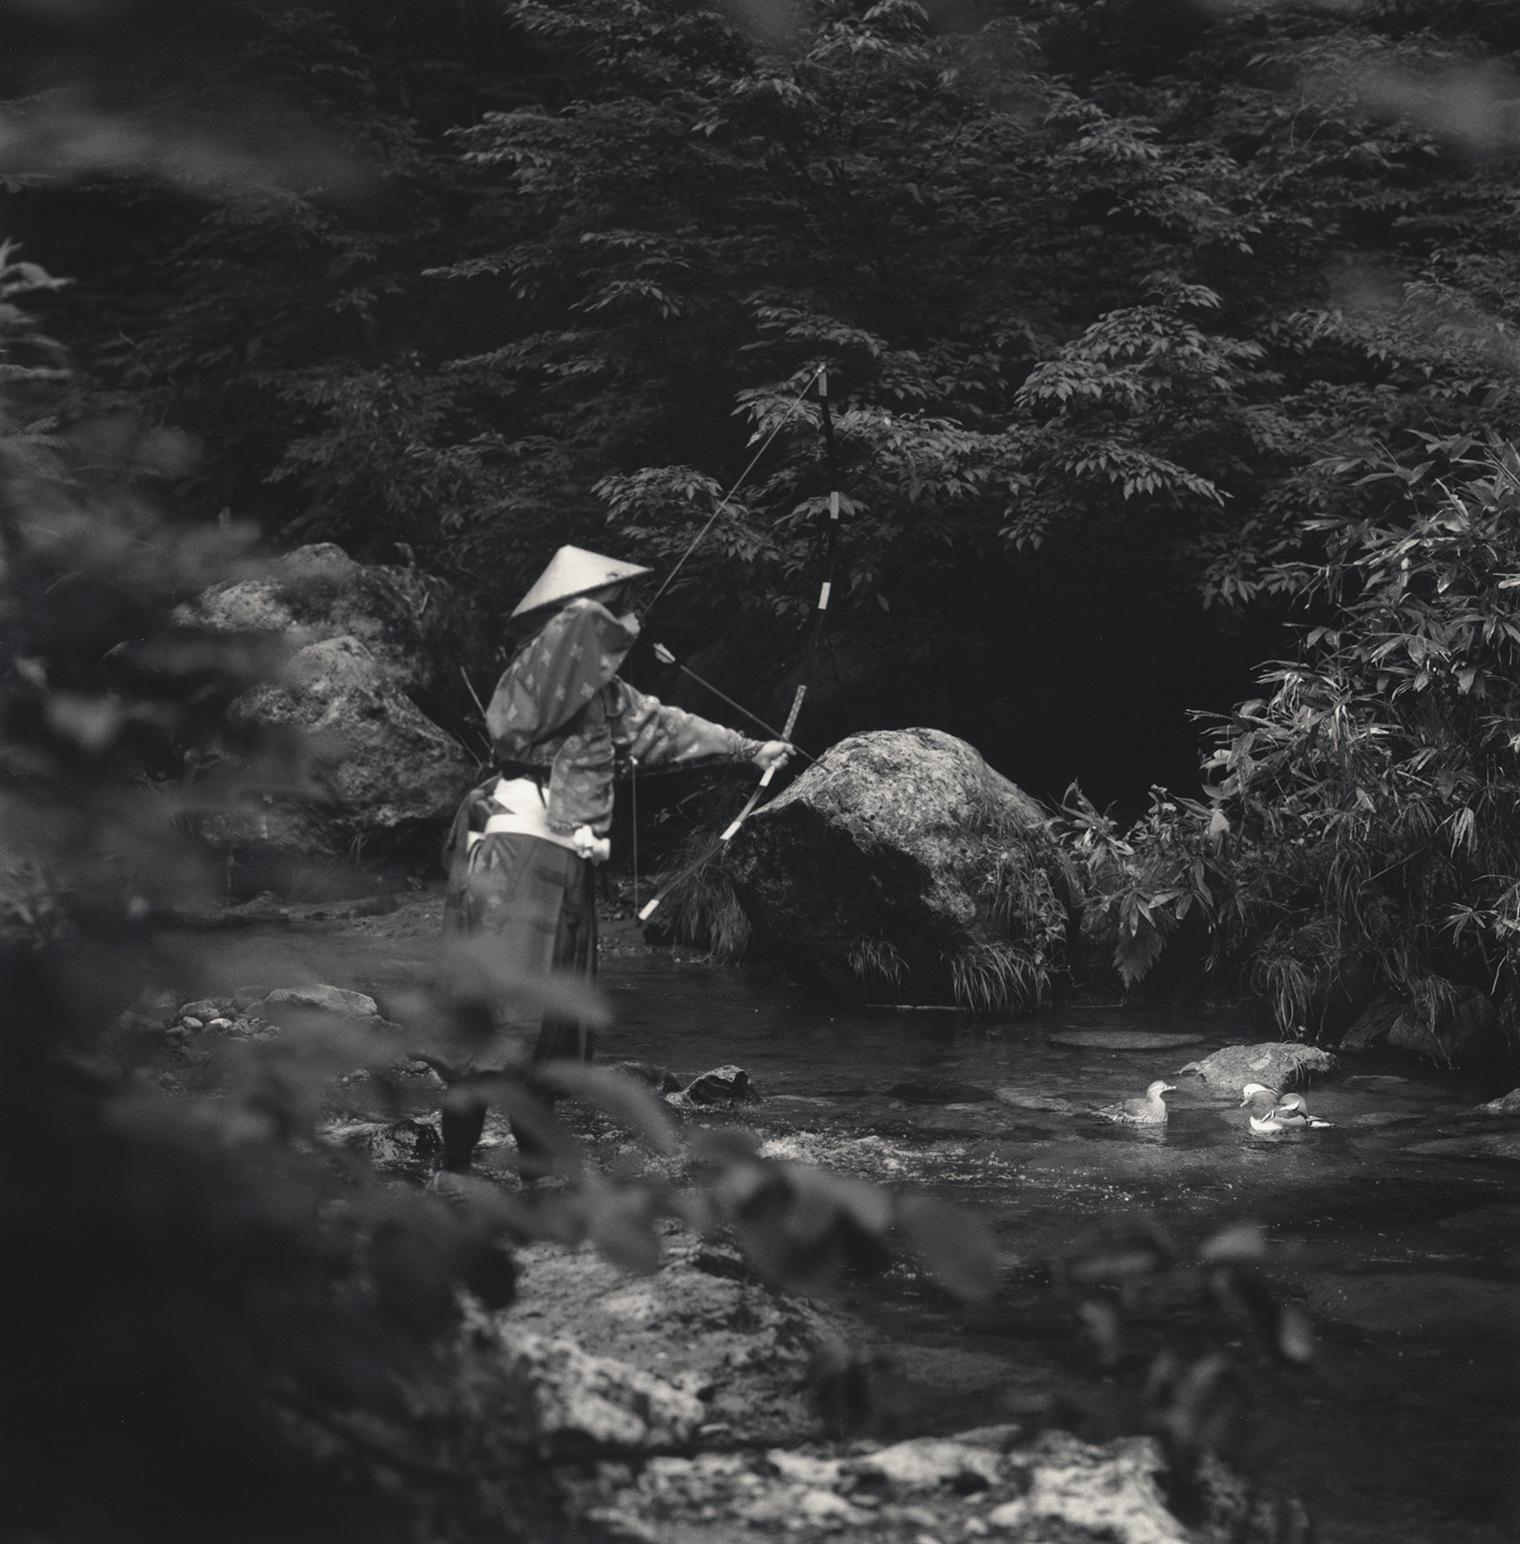 Hiroshi Watanabe Pairs Japanese Horror Stories And Photography In His Book,...